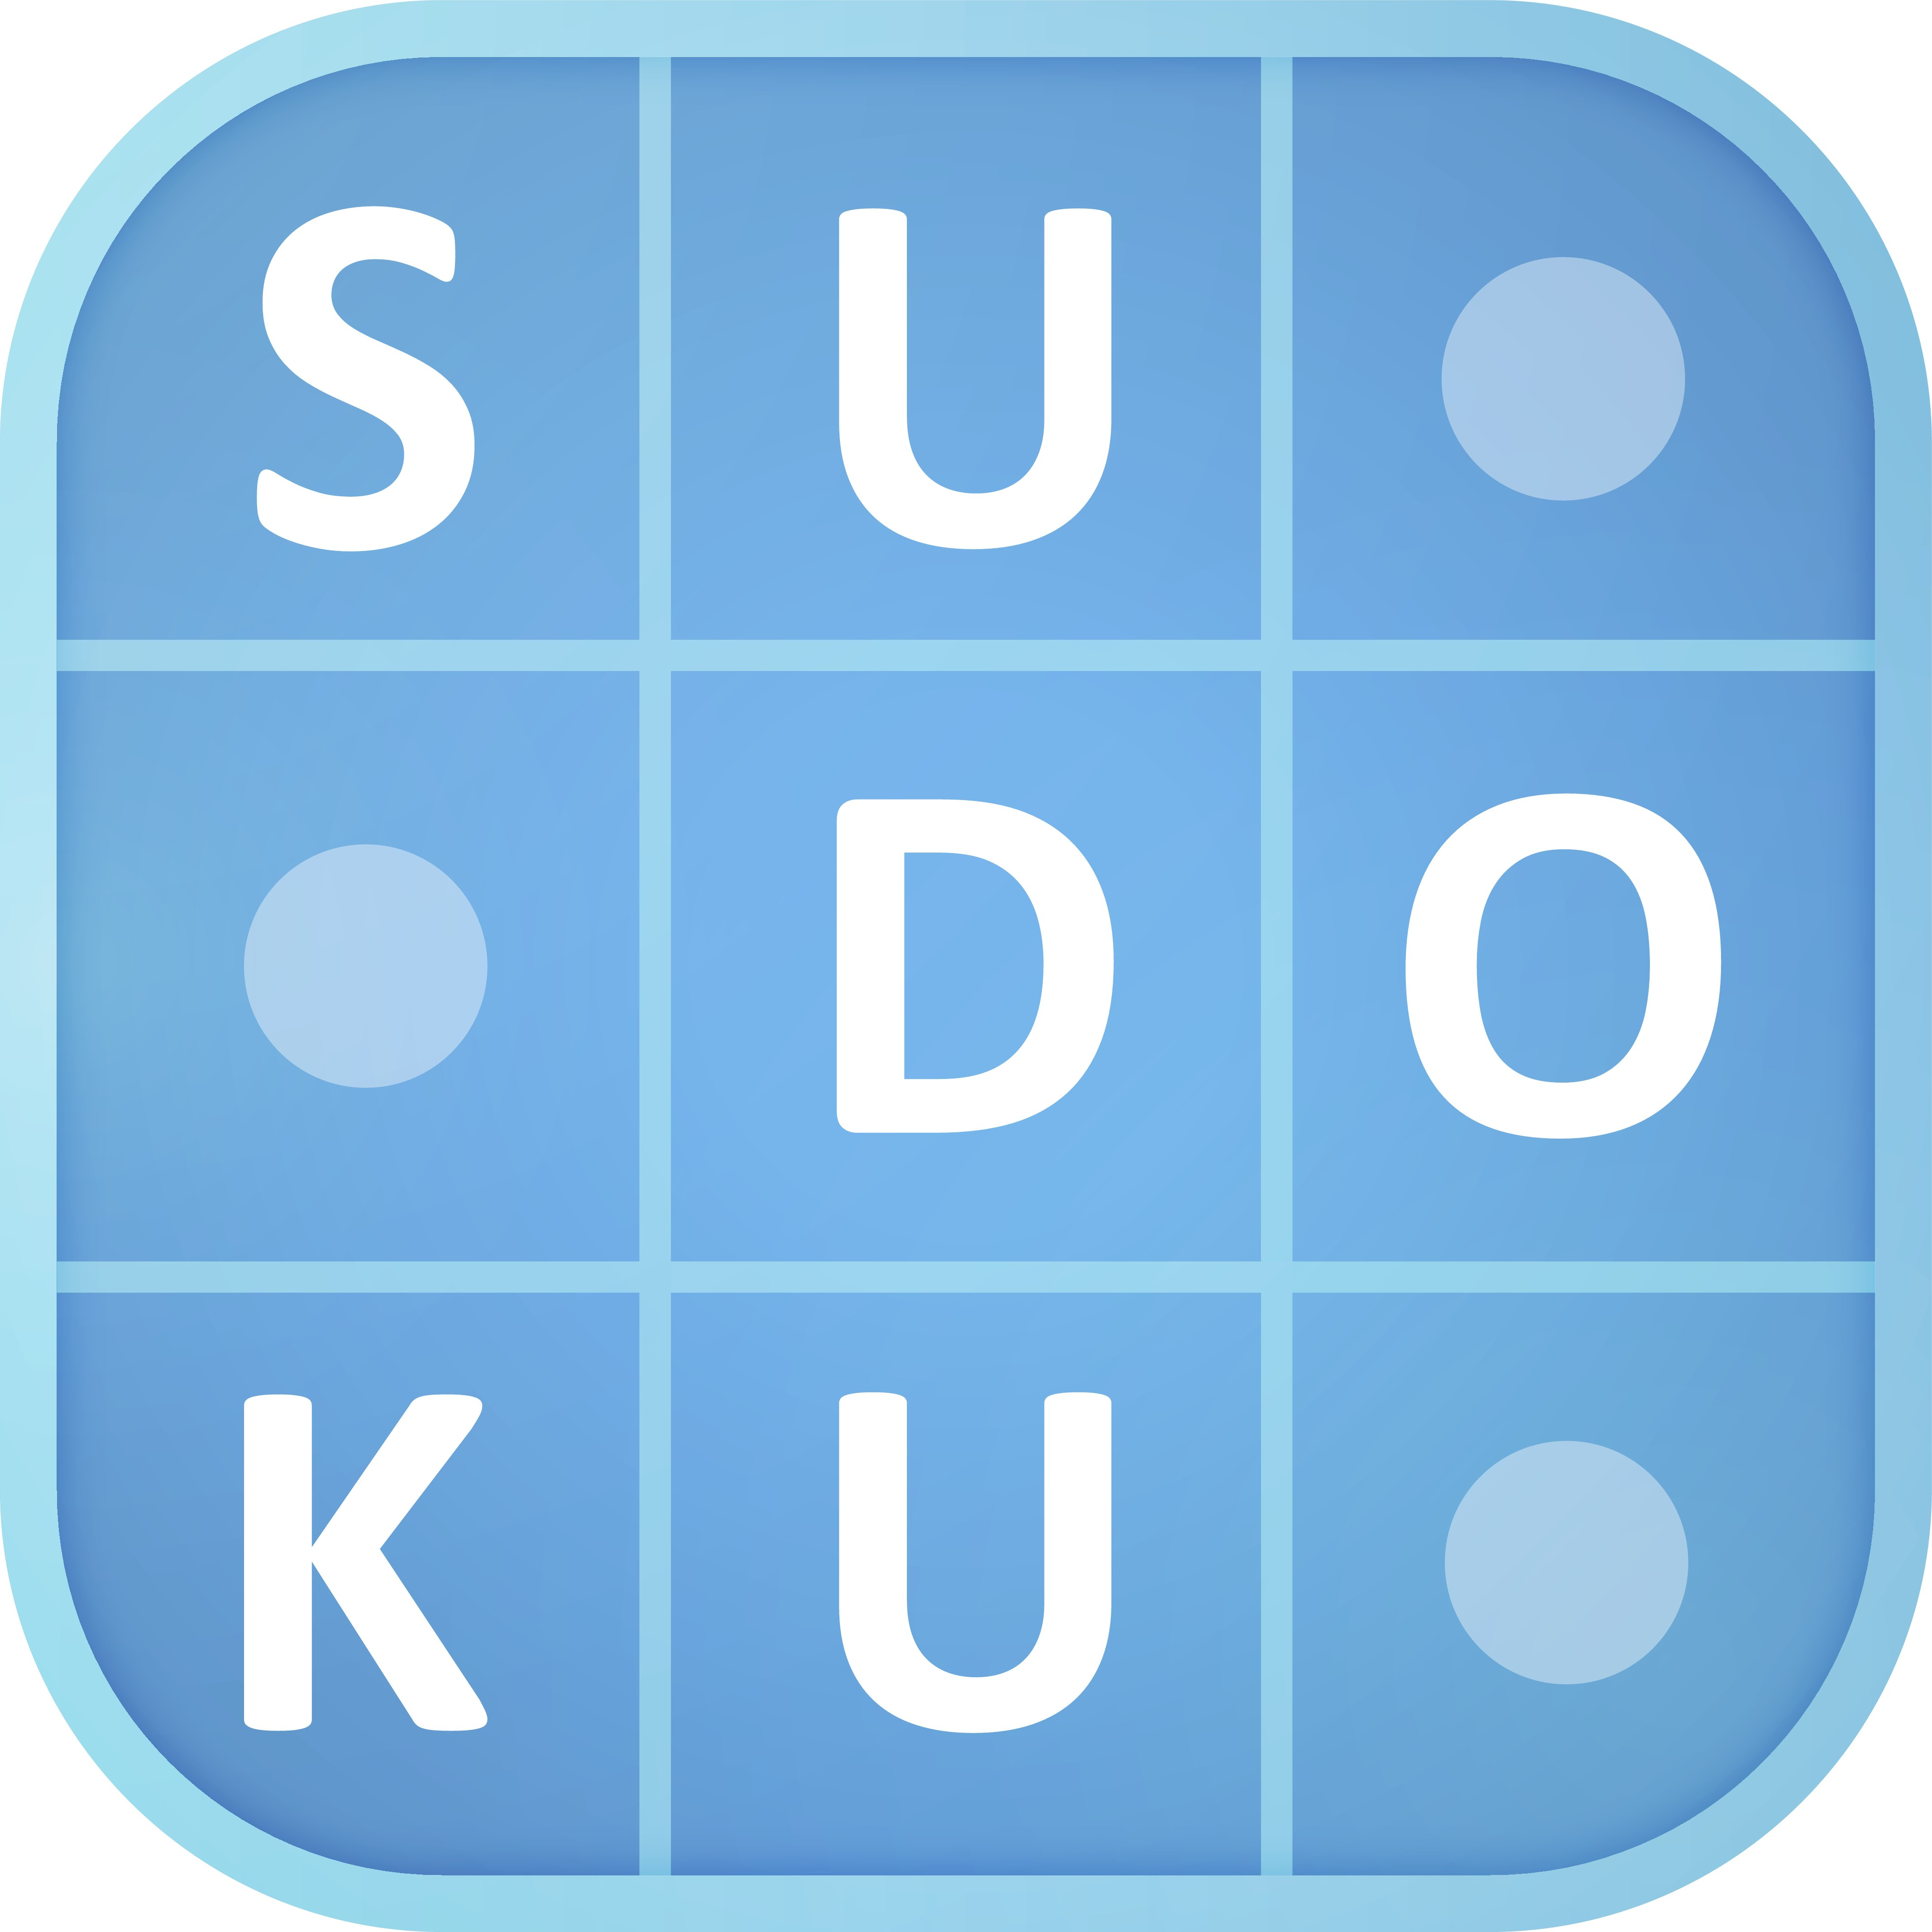 Create a fun sudoku puzzle icon for Android / iOS